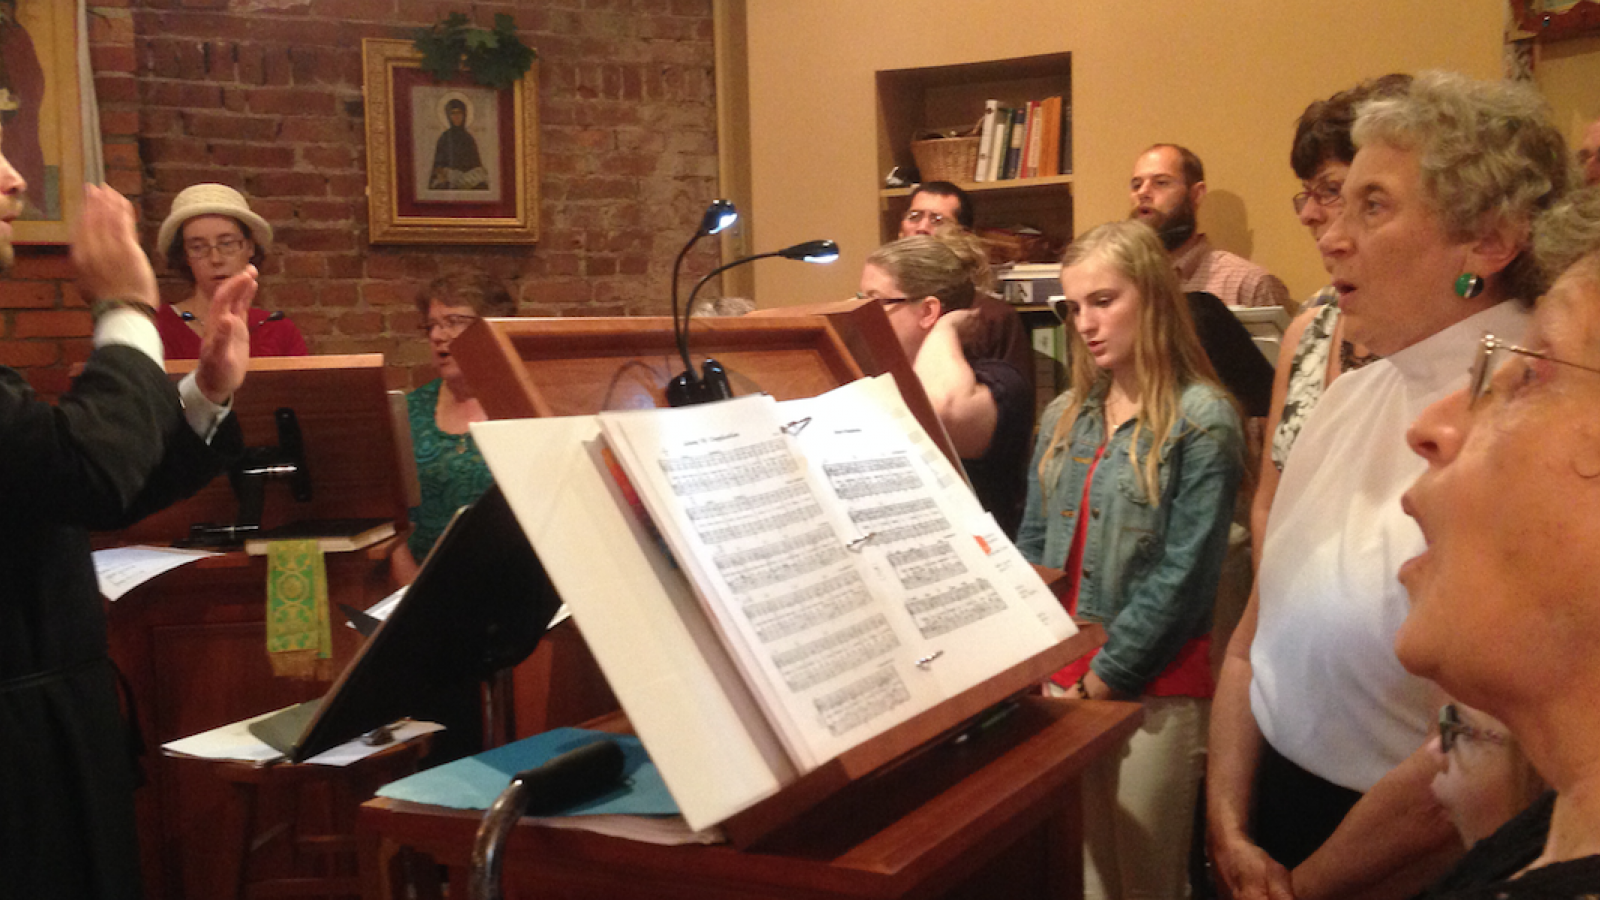 Choir at St. Gregory of Nyssa Orthodox Church